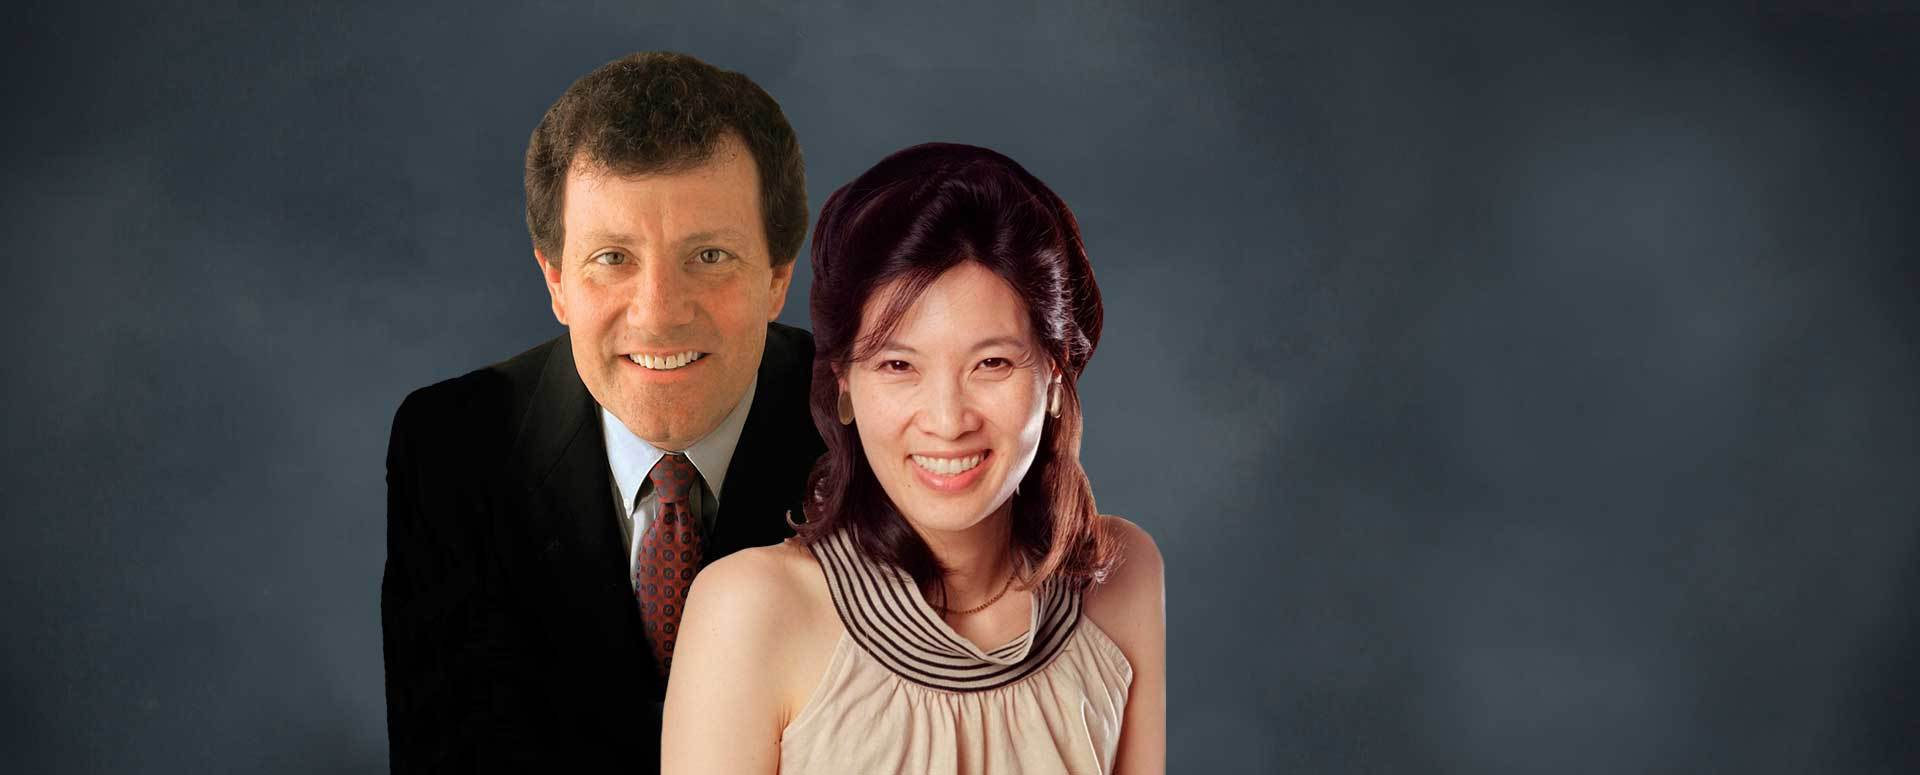 Book Nicholas Kristof & Sheryl WuDunn for Speaking, Events and